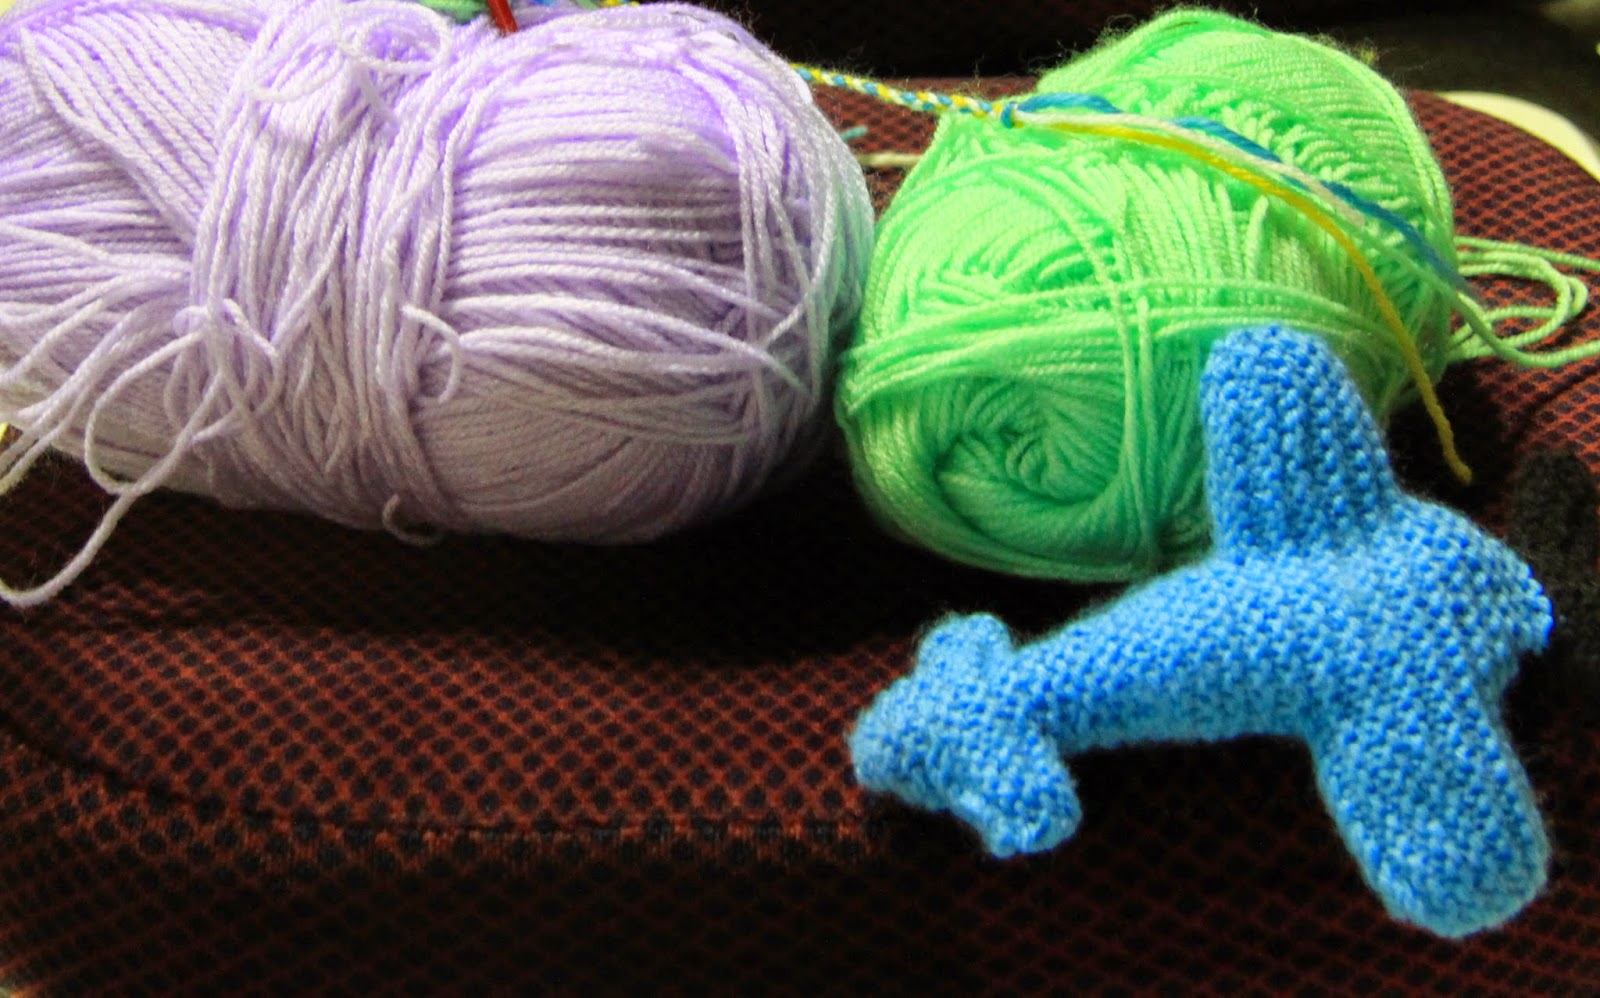 Janes Probably Knitting: How to knit an aeroplane